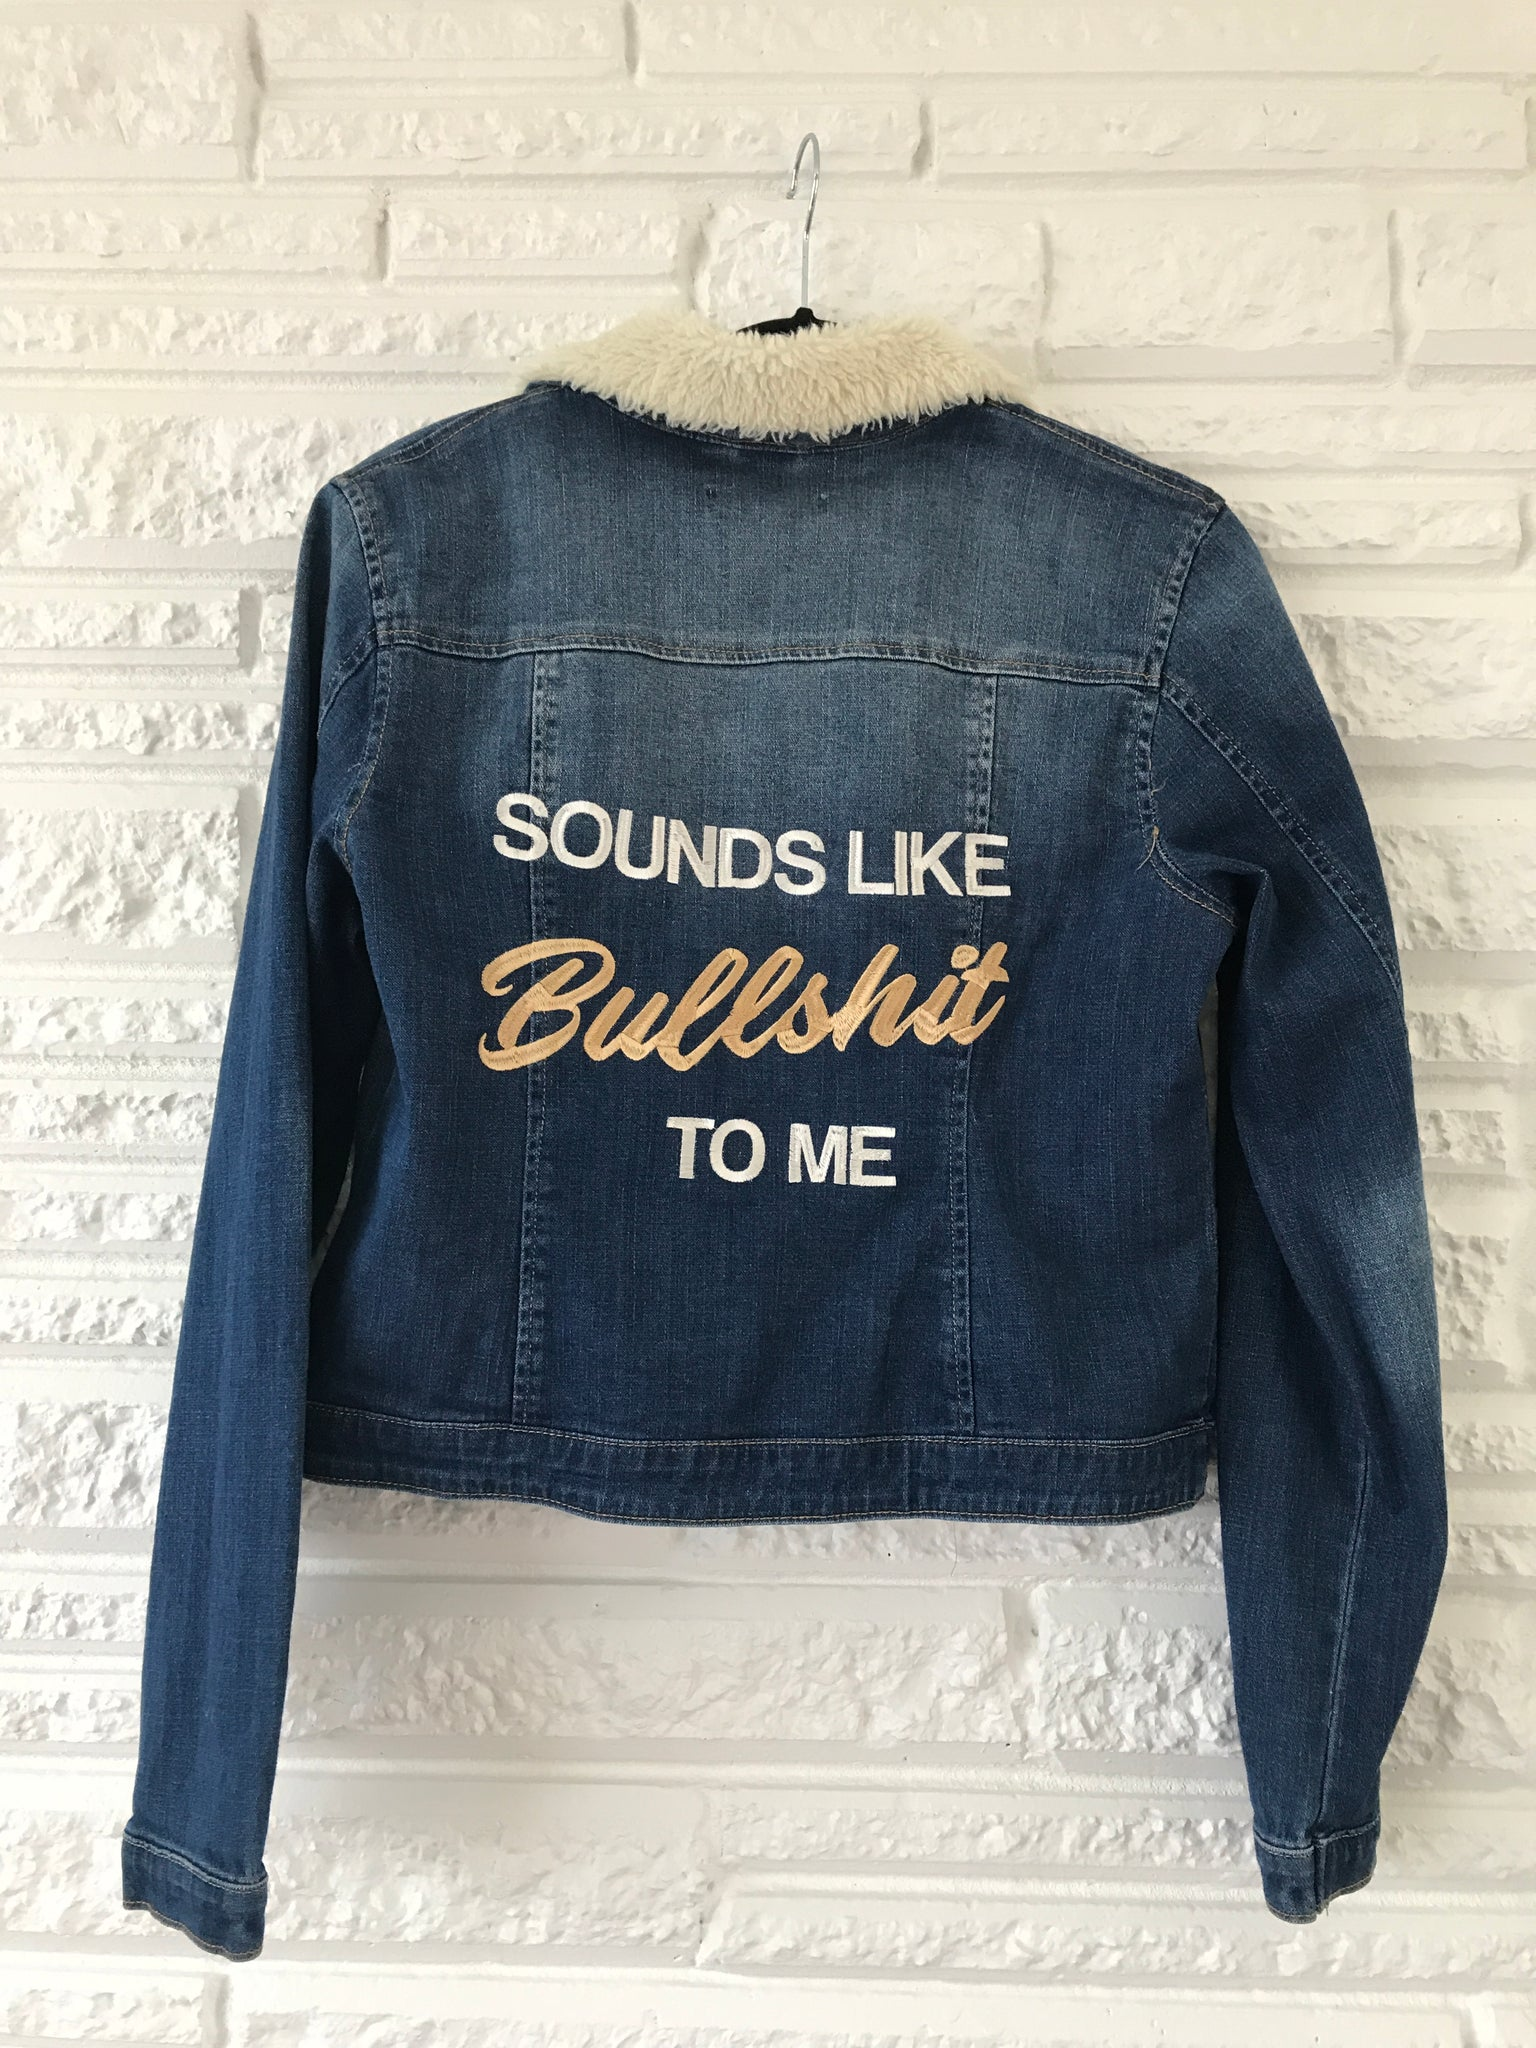 Bullshit Jacket Denim/Sherpa Collar Size Large